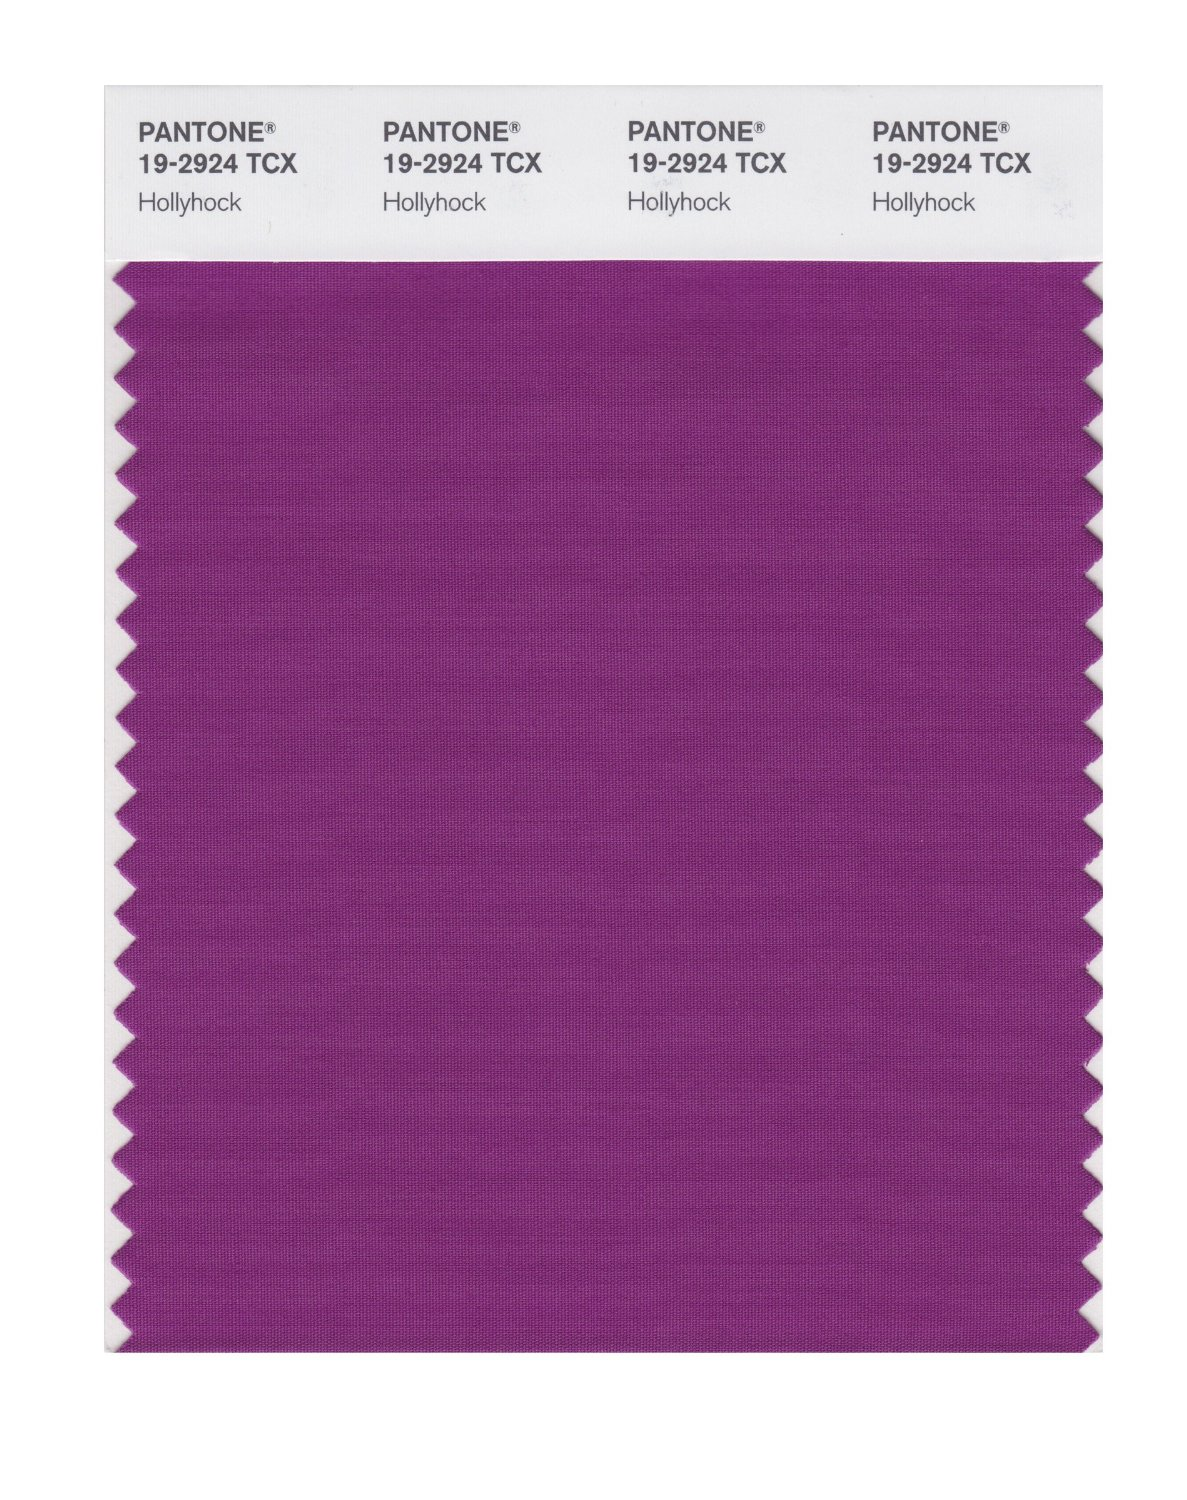 Pantone Smart Swatch 19-2924 Holly Hock